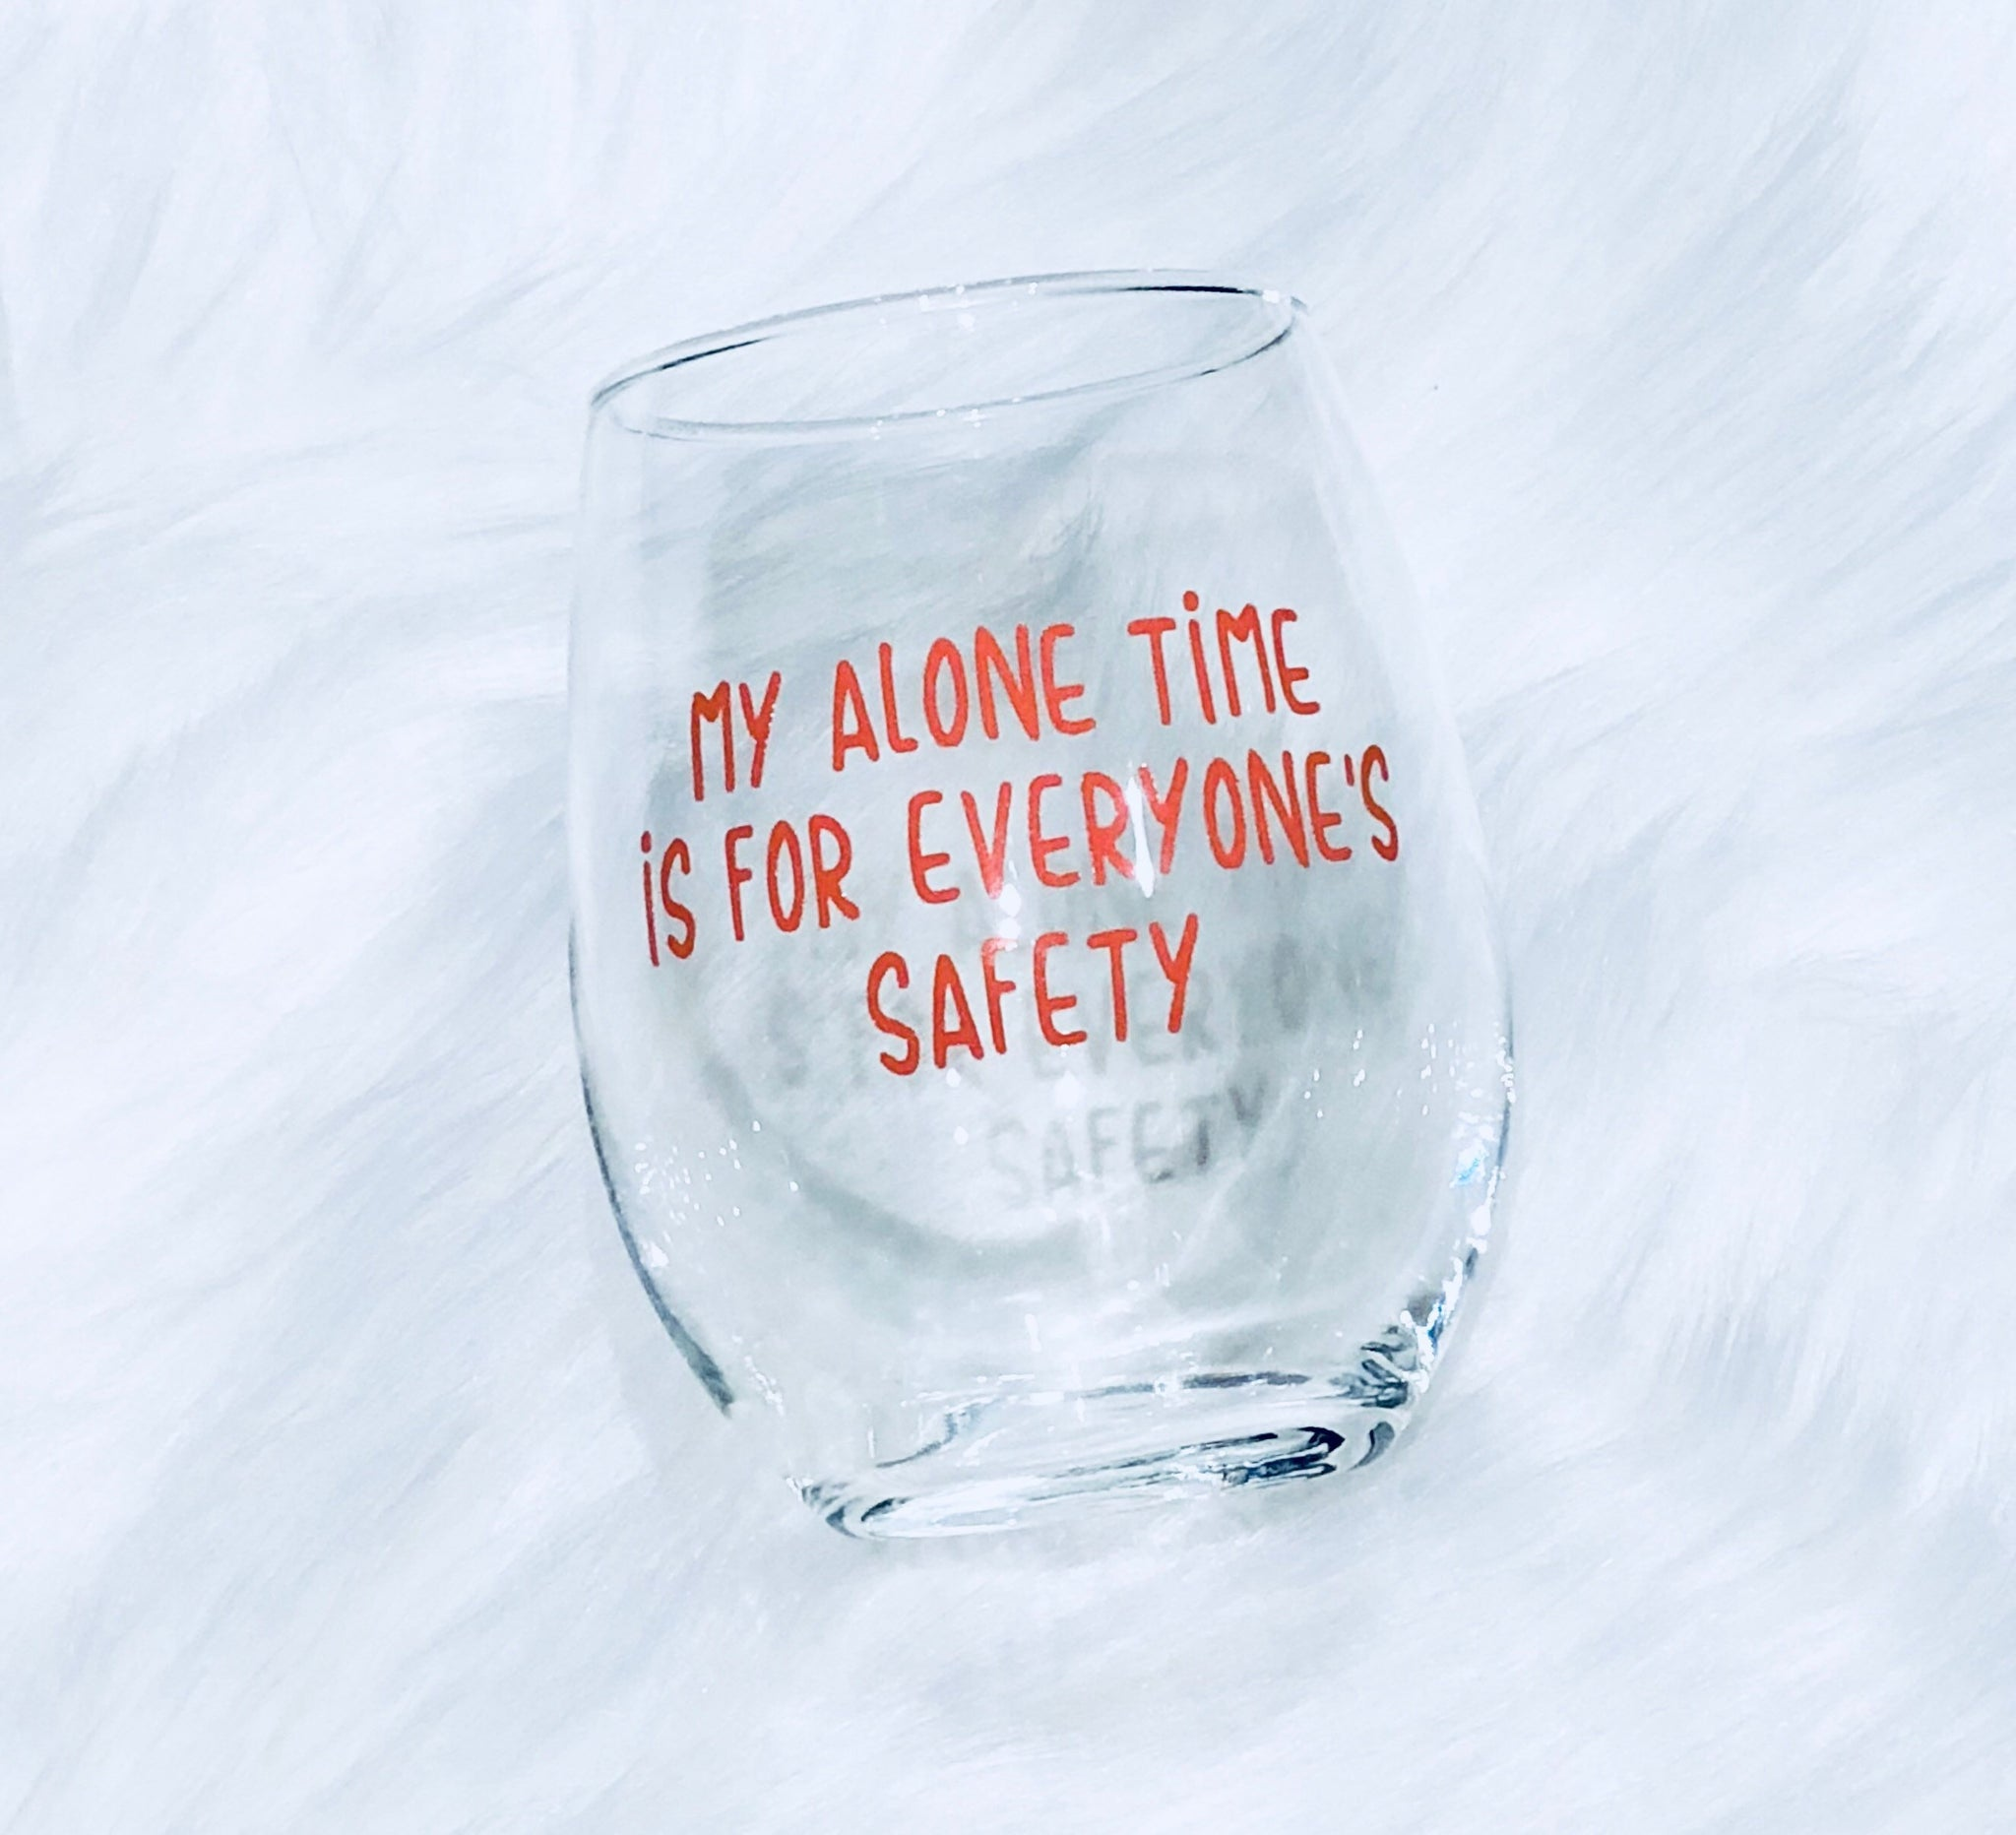 Funny wine glass, Funny wine gift, wine glass for moms, funny cocktail glass, cute gift for friends, mom group gift, gift for moms